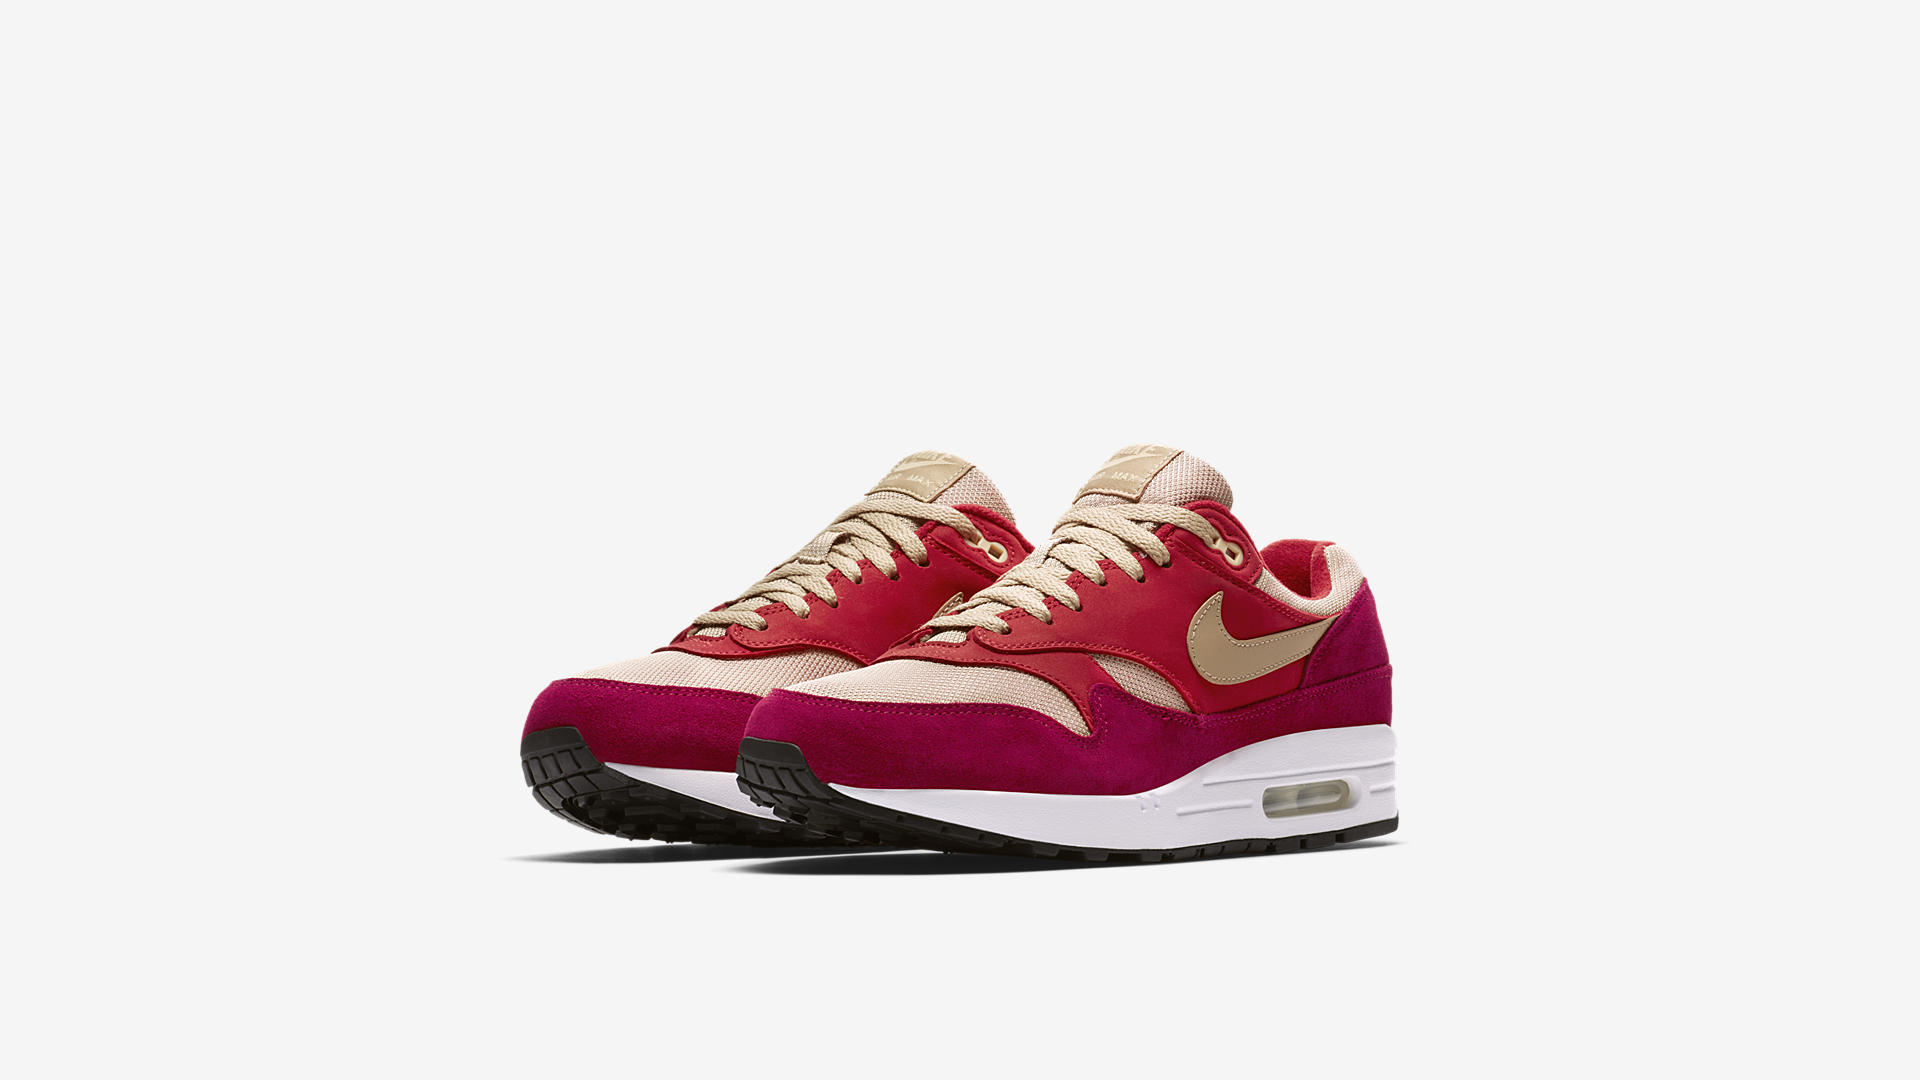 908366 600 Nike Air Max 1 Red Curry 4